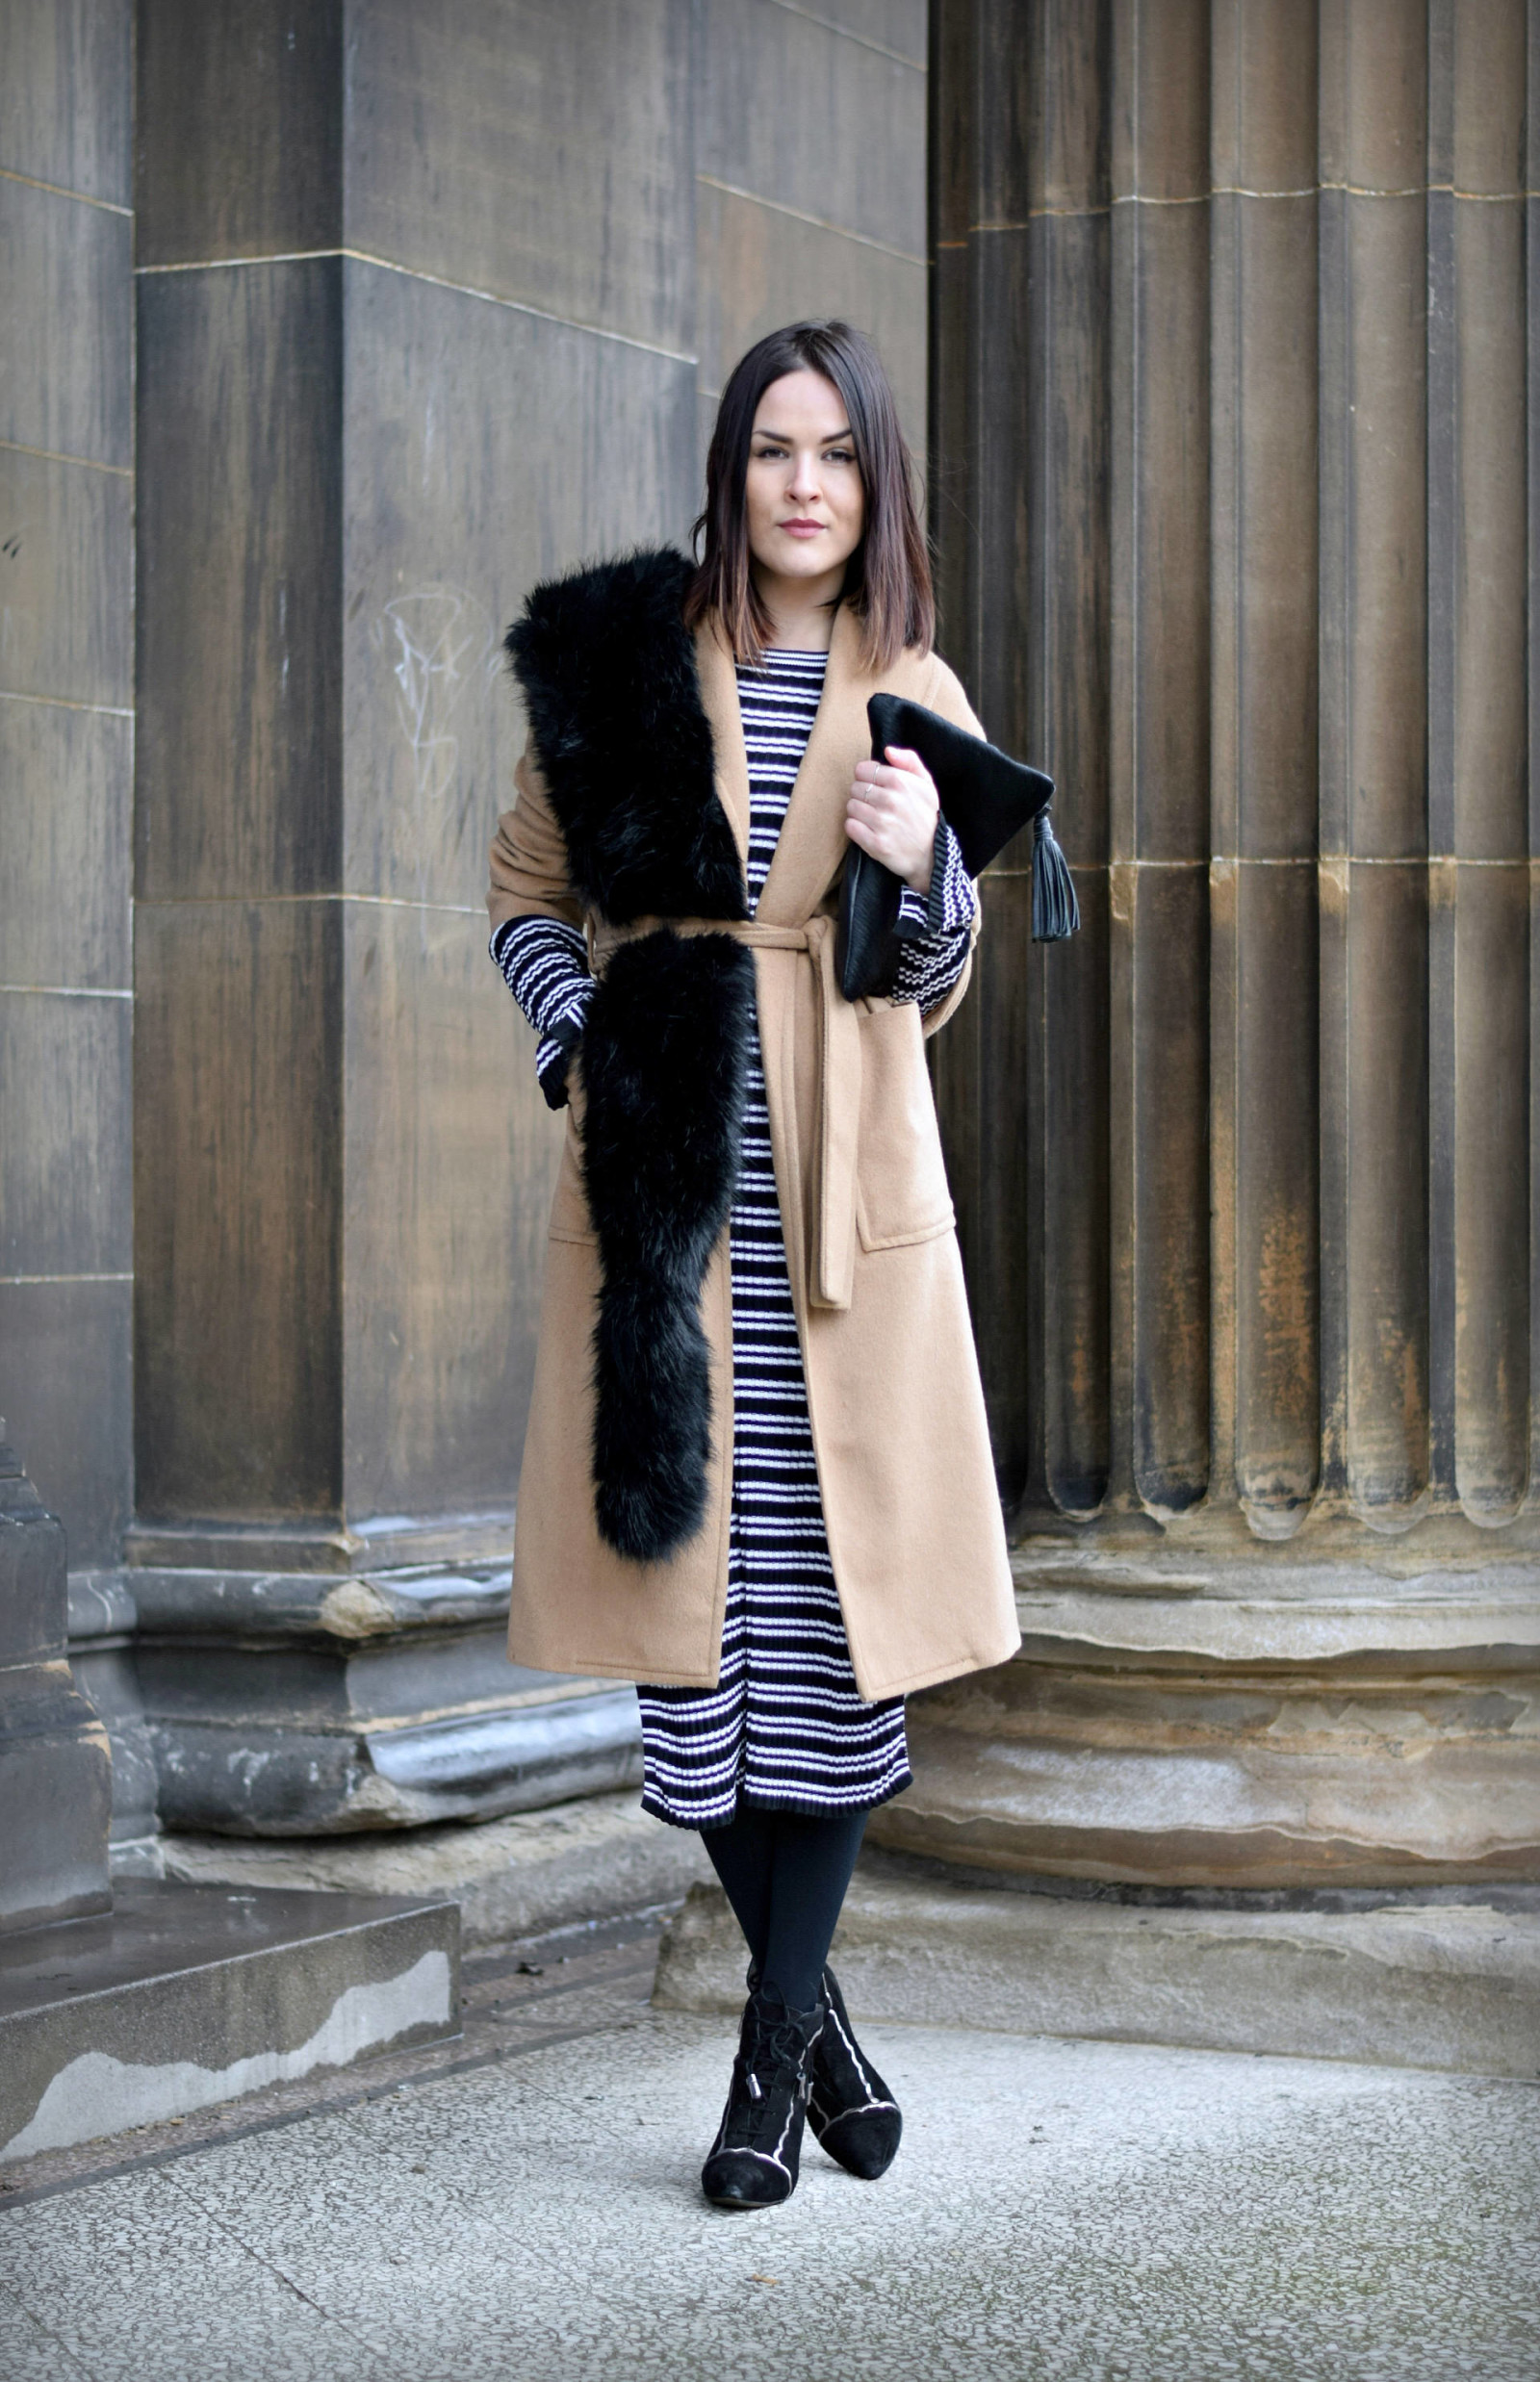 Striped H&M Dress and Camel Coat - LAFOTKA Fashion BLogger6